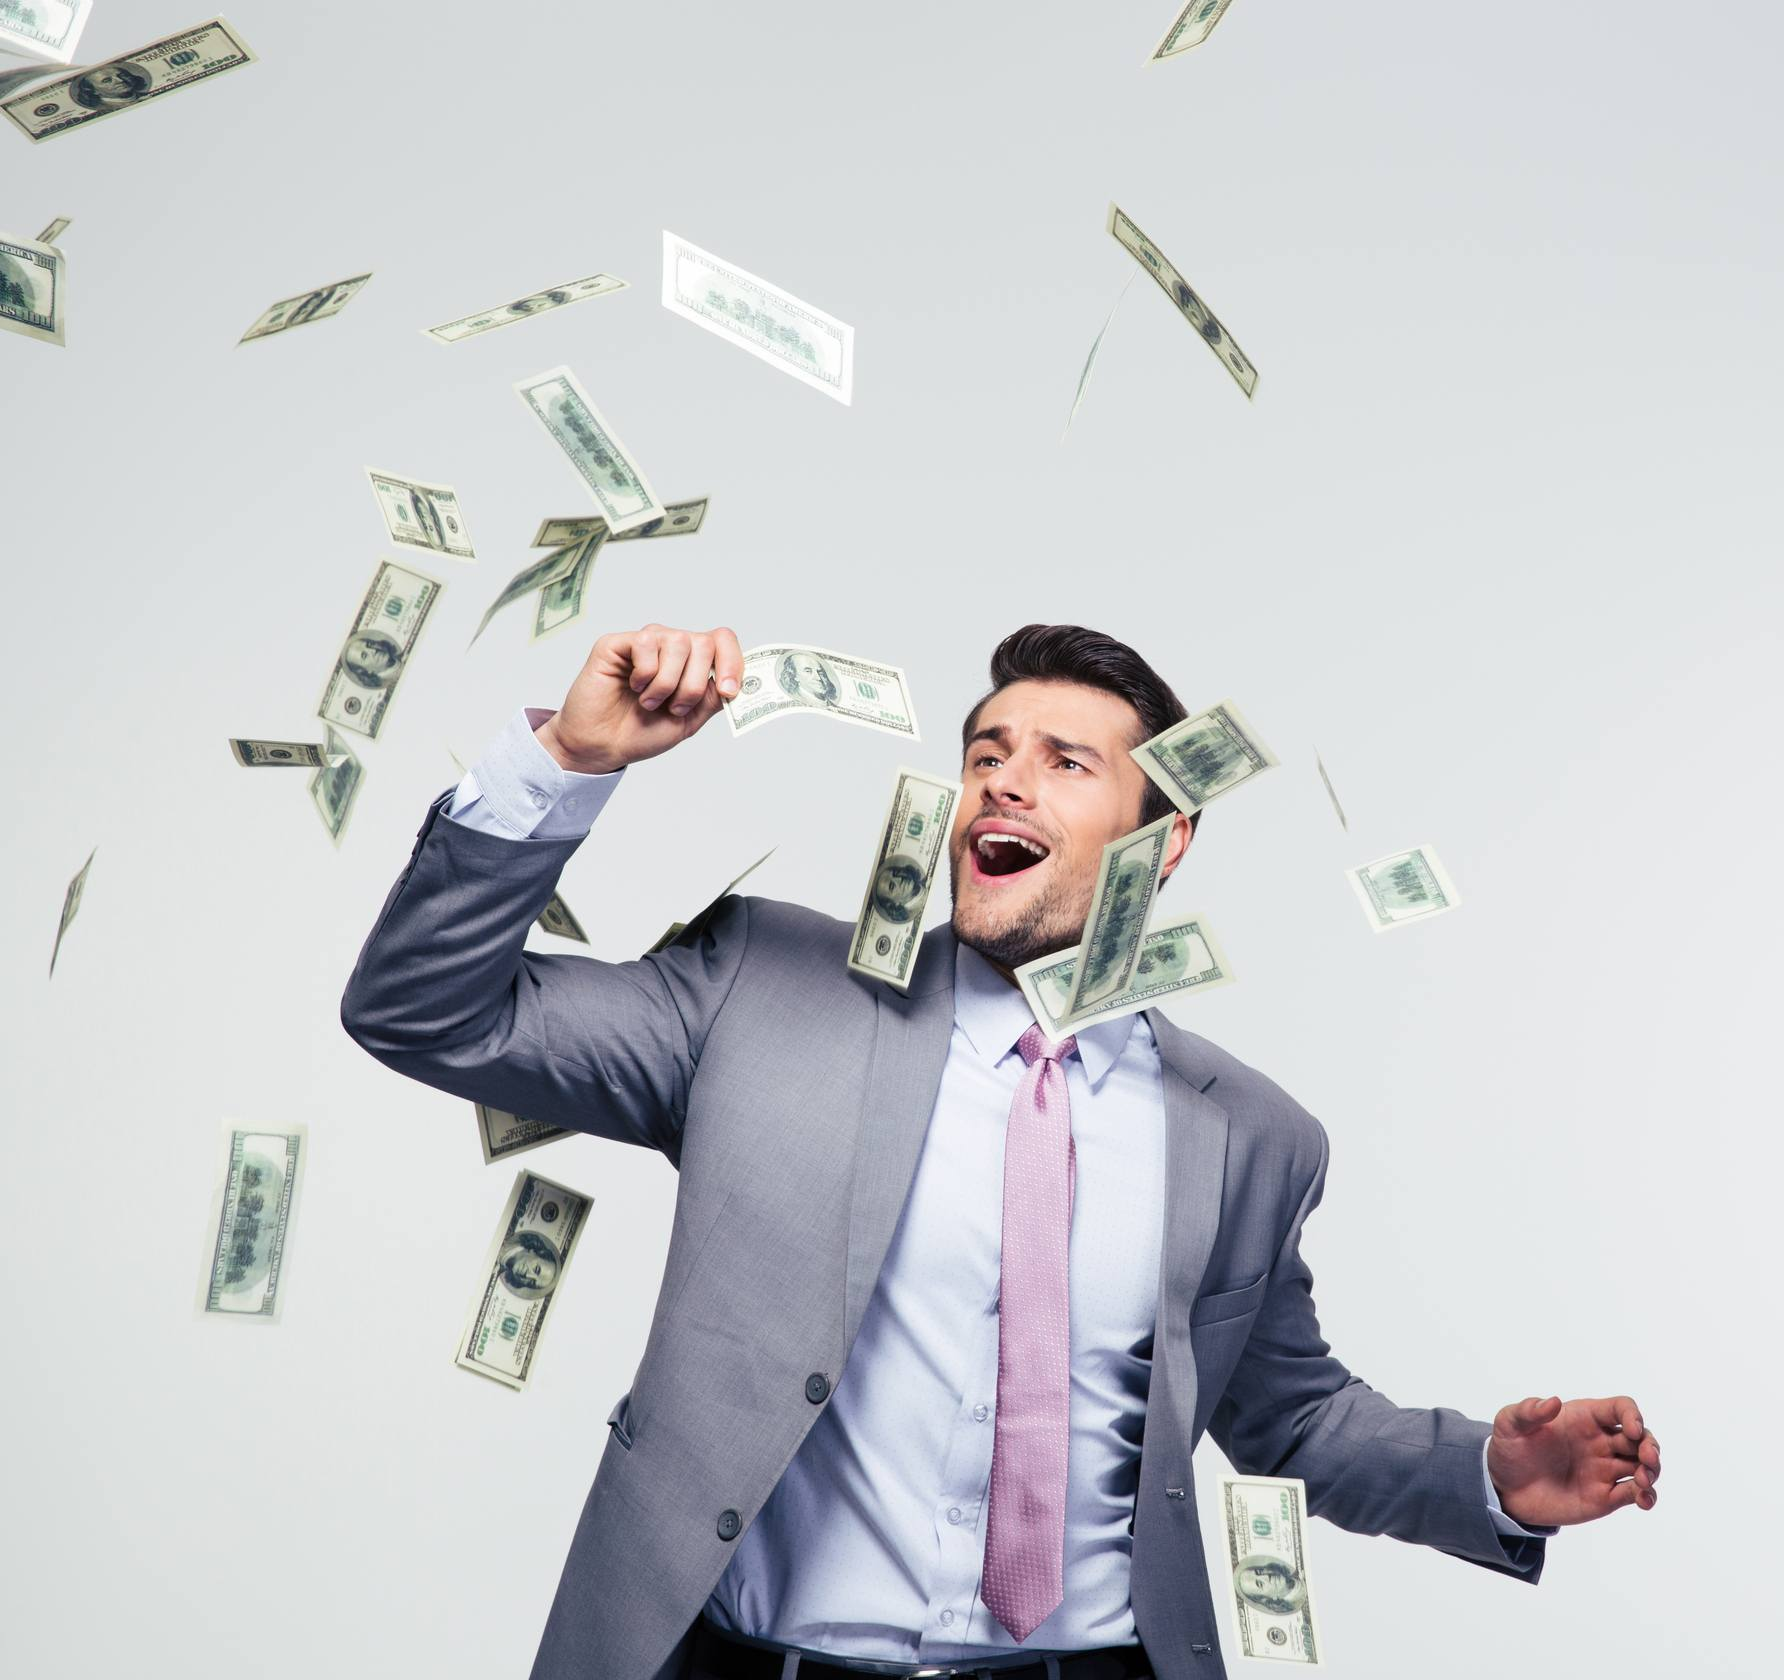 Man in suit with falling money